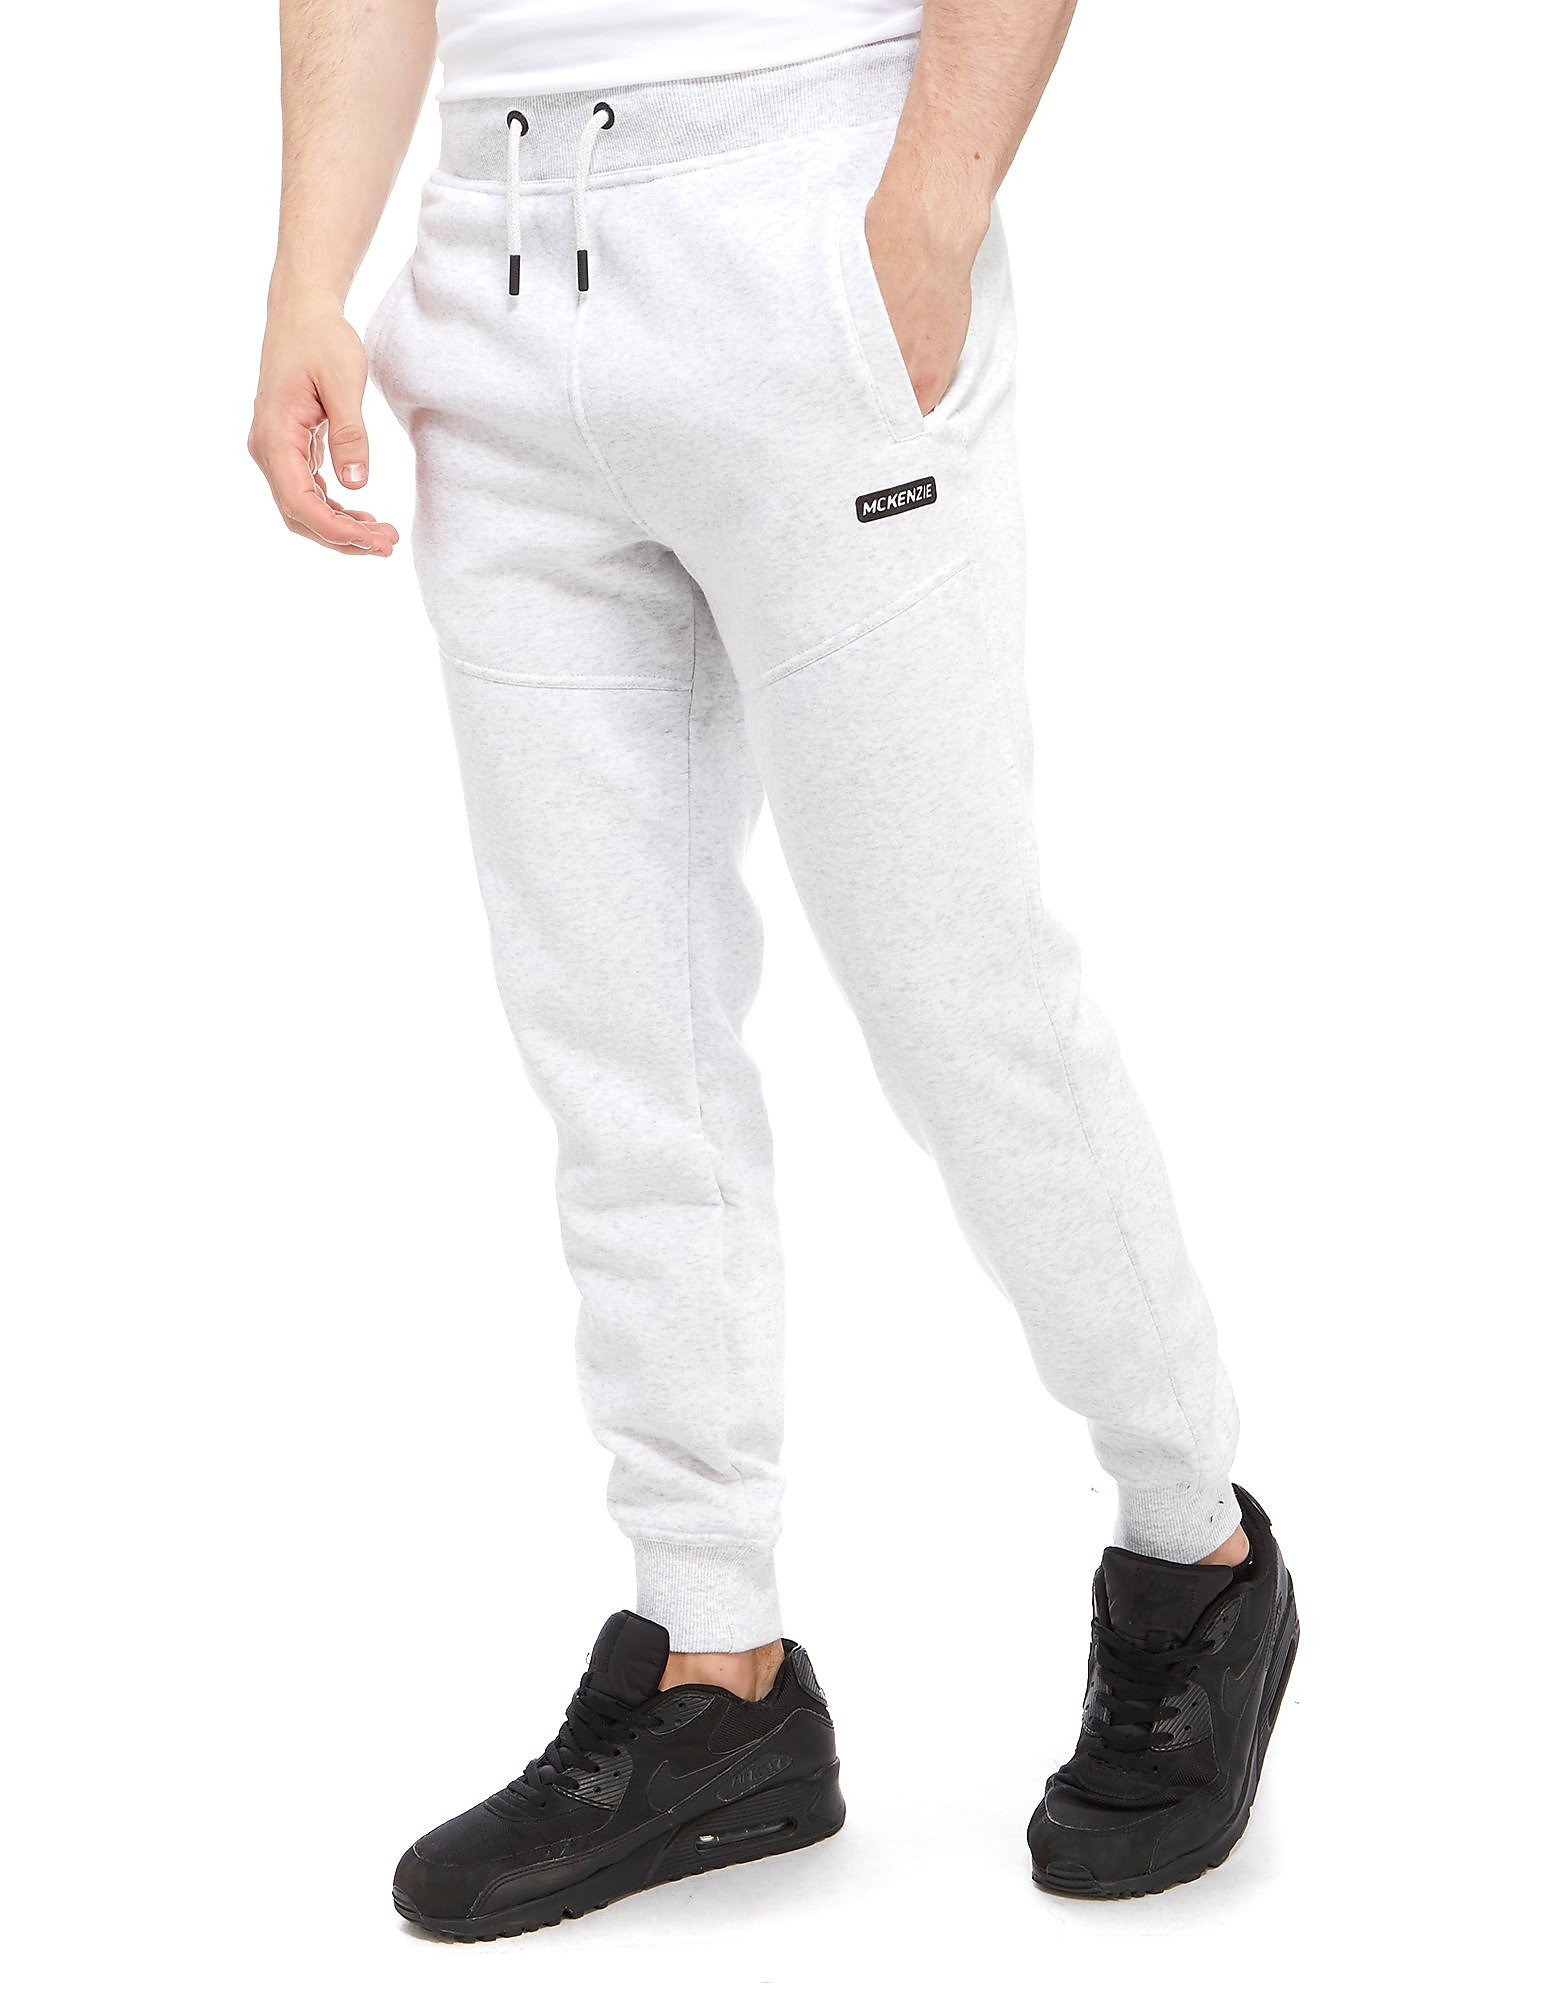 McKenzie pantalon Stirling Fleece